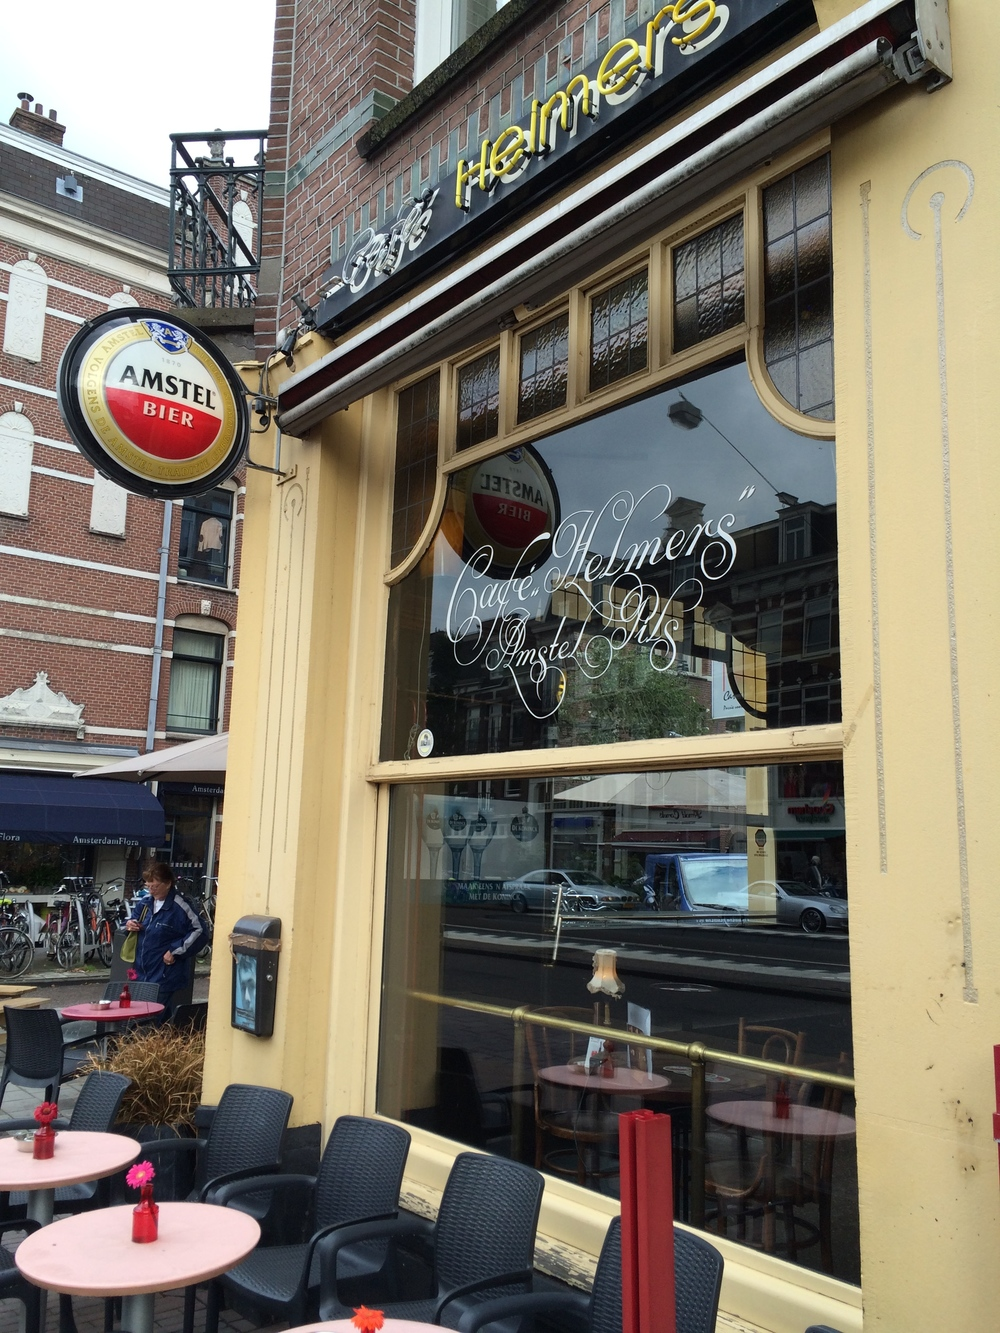 Who knew Topper Helmers had a cafe in Amsterdam?